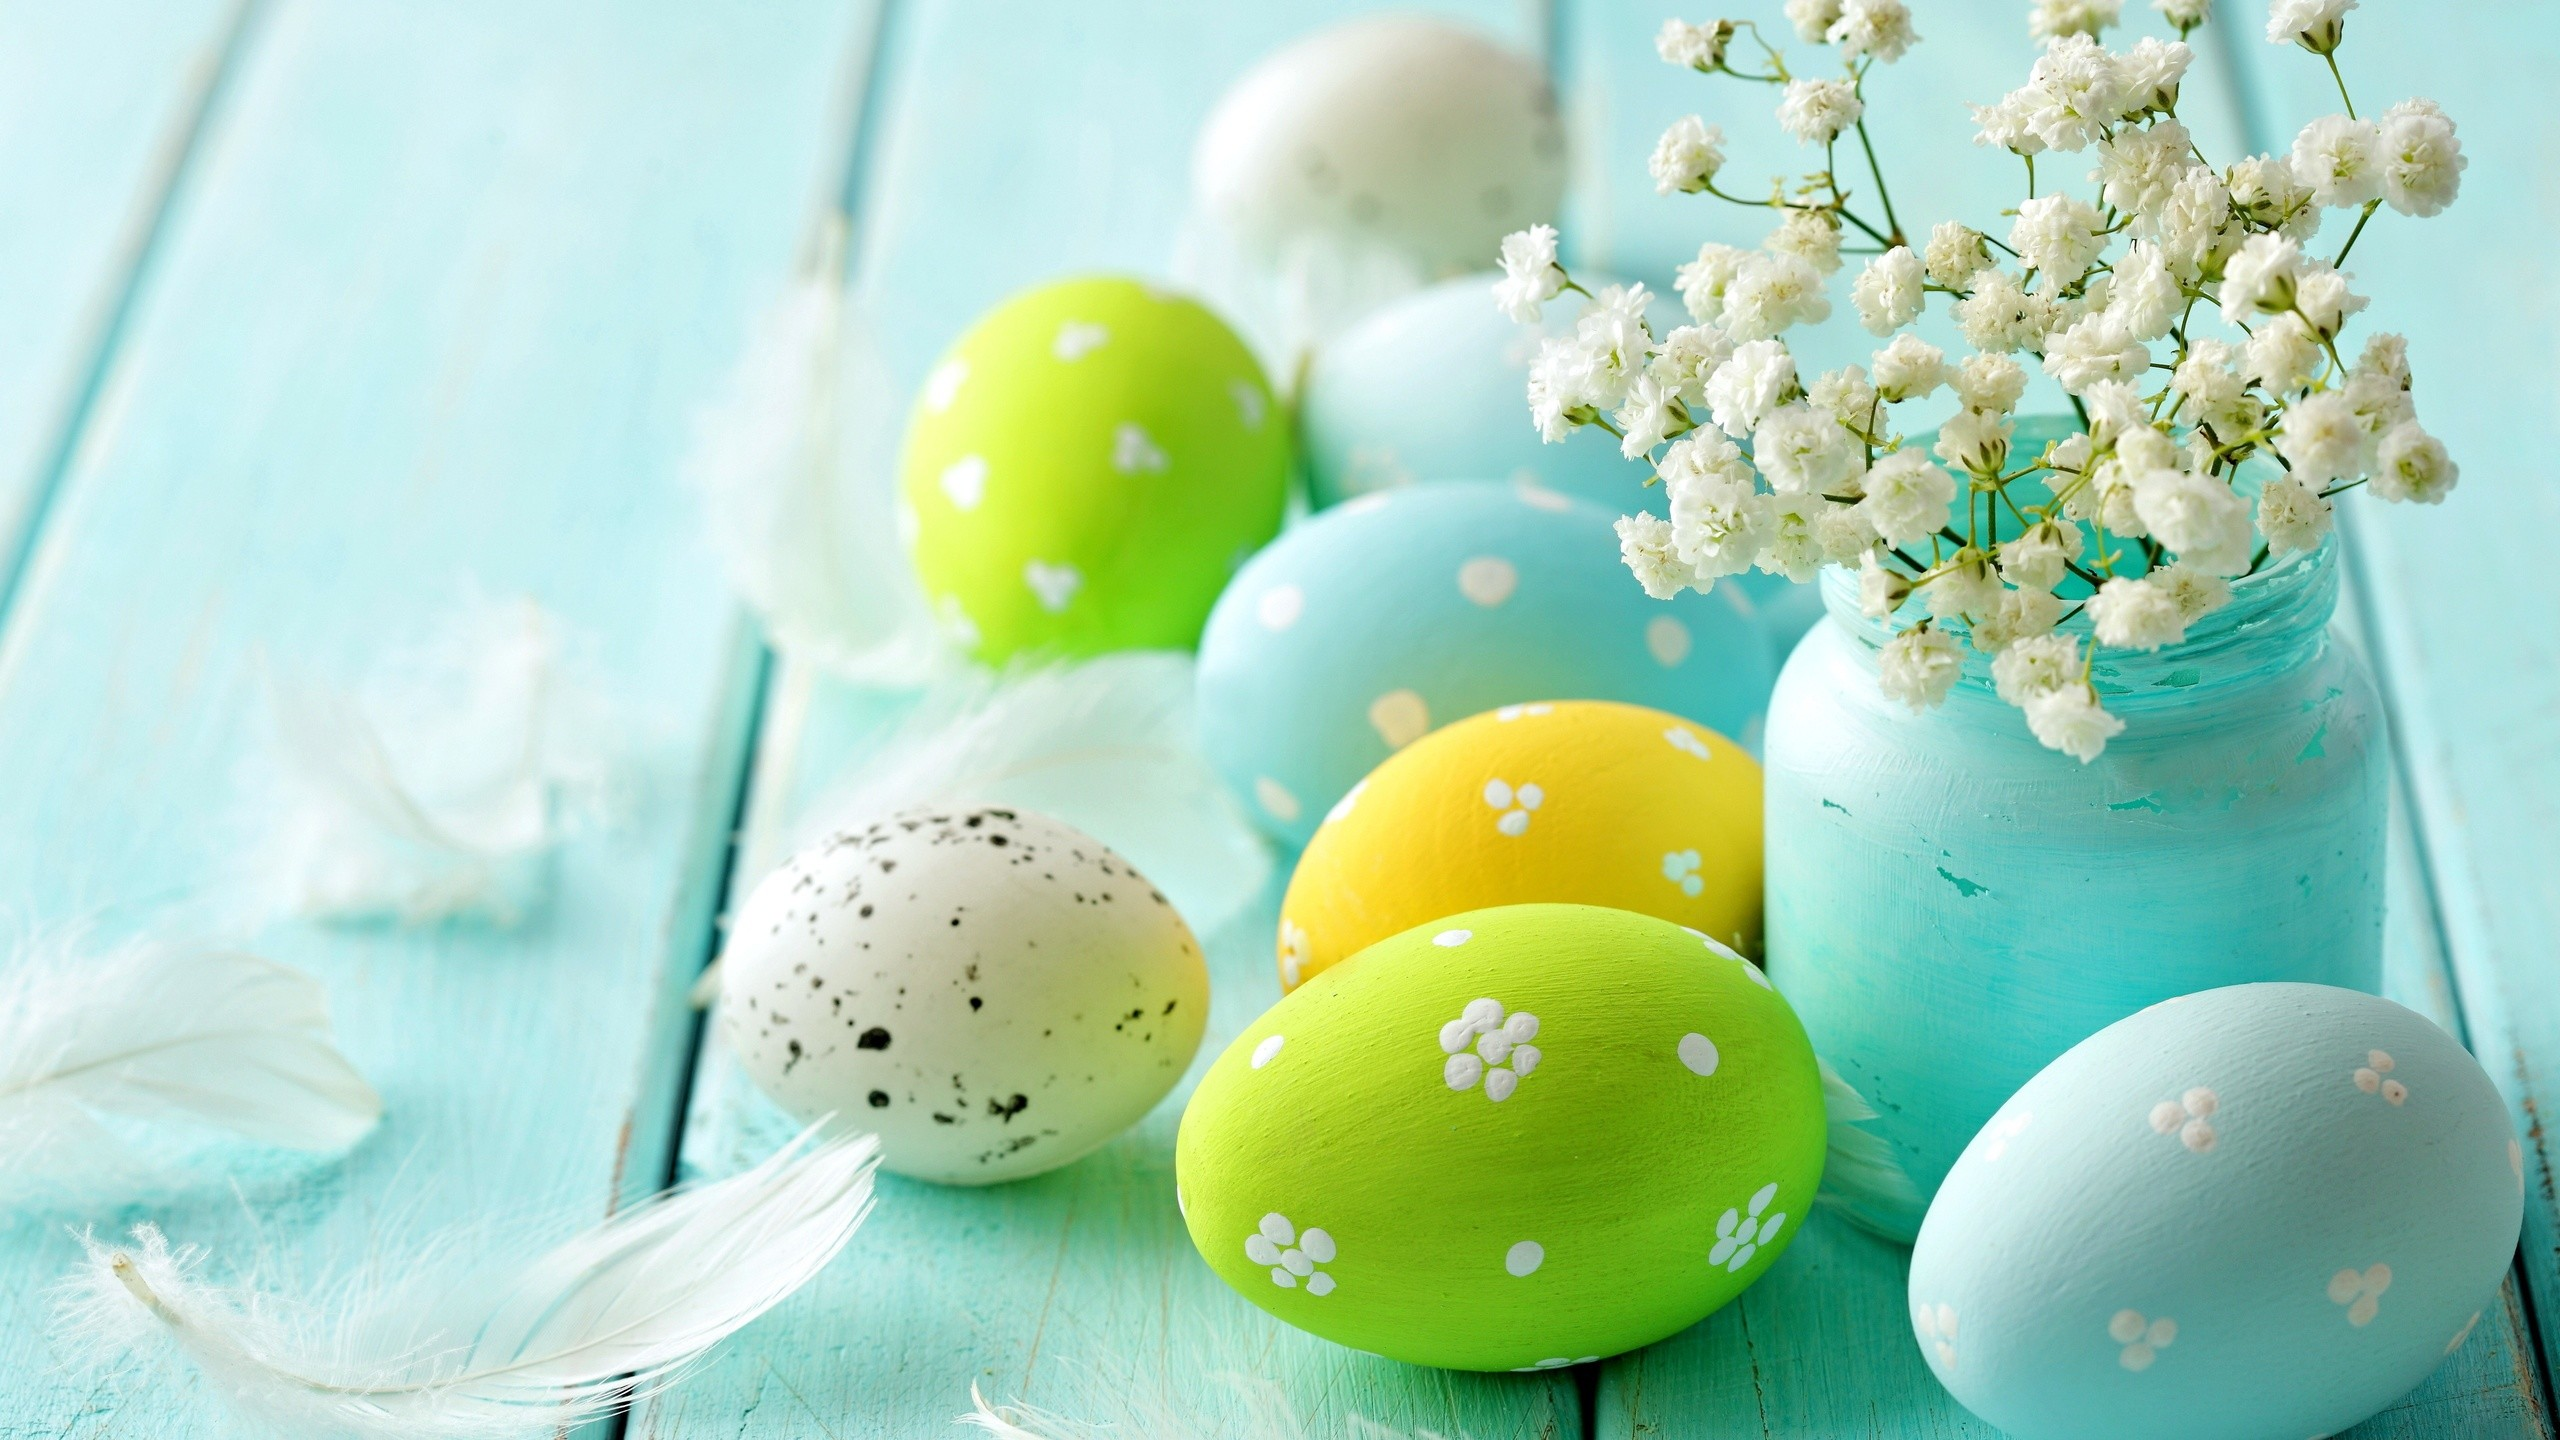 2560x1440 Hd Happy Easter Wallpaper Download Free 2560x1440PX 3d